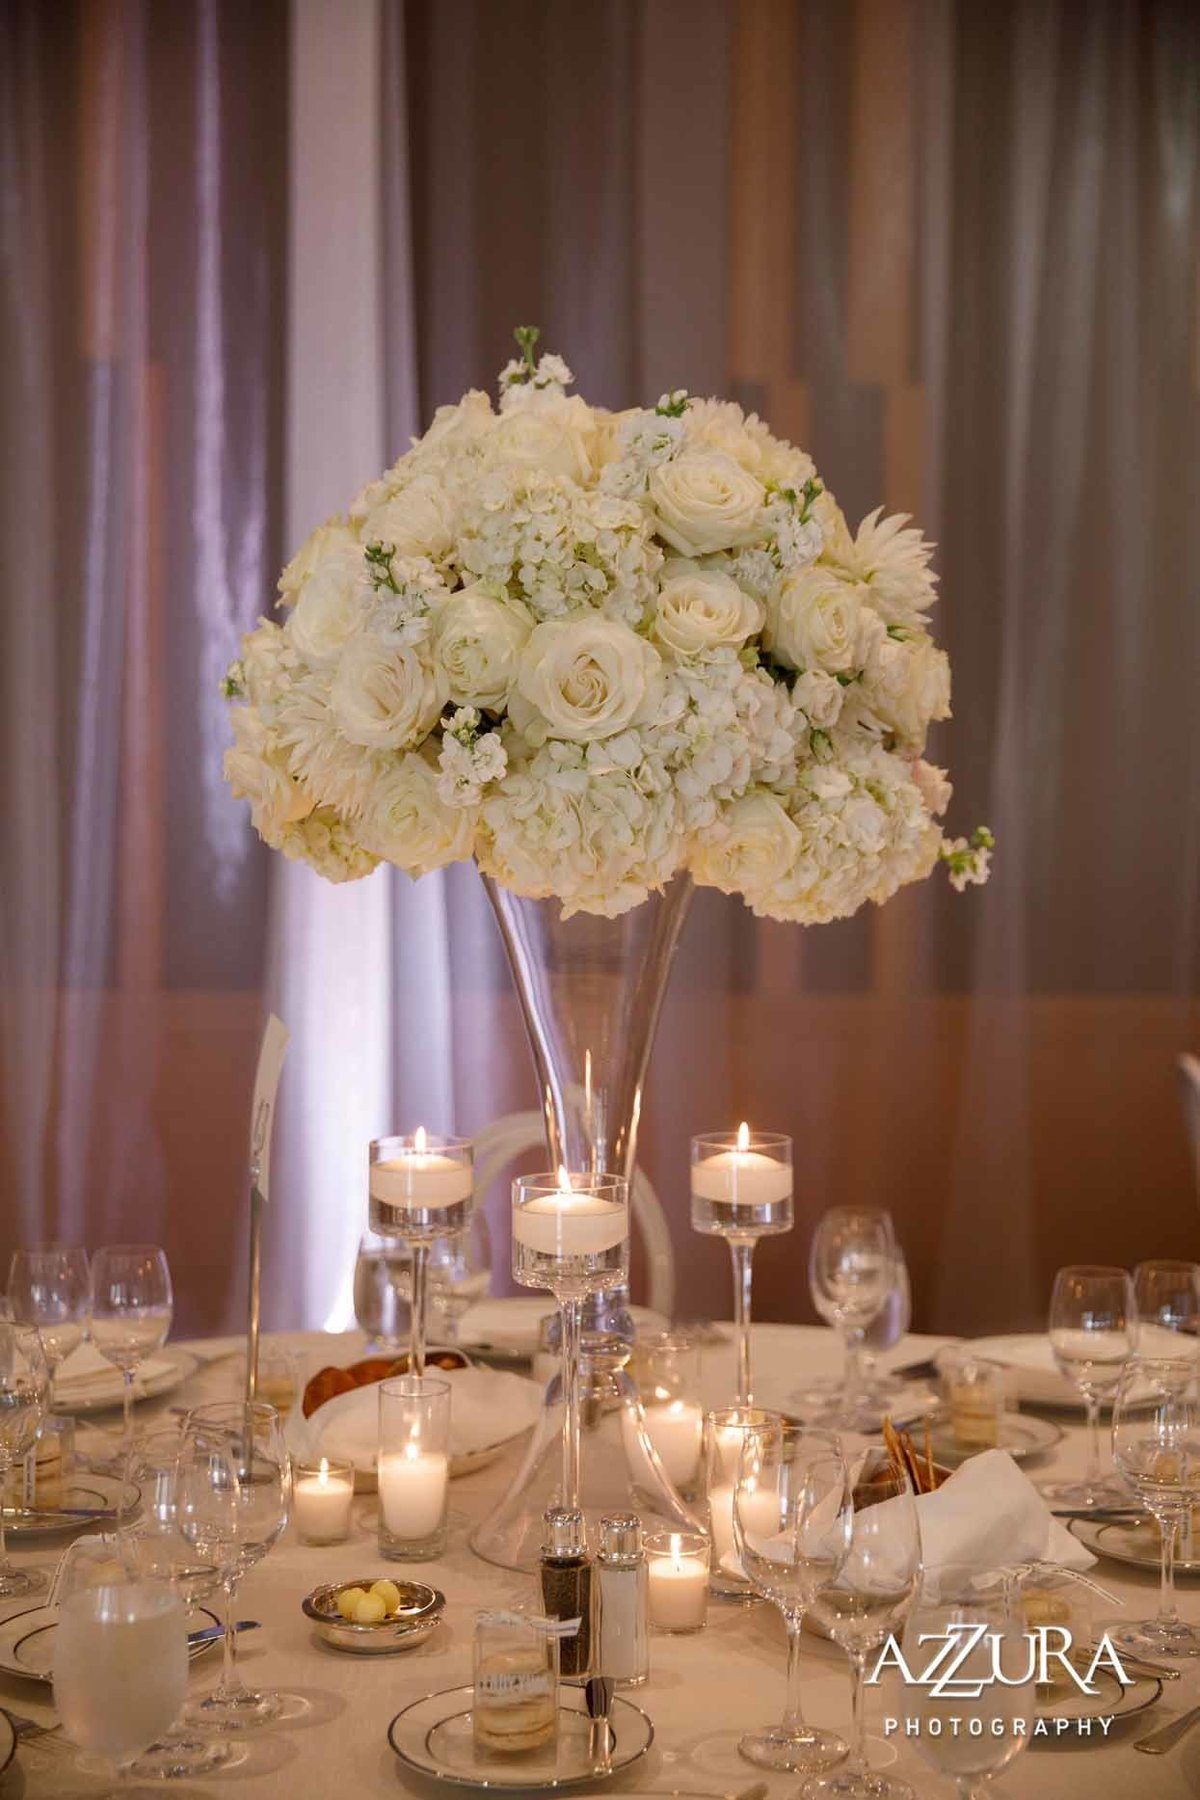 100luxe-four-seasons-wedding-Flora-Nova-Design